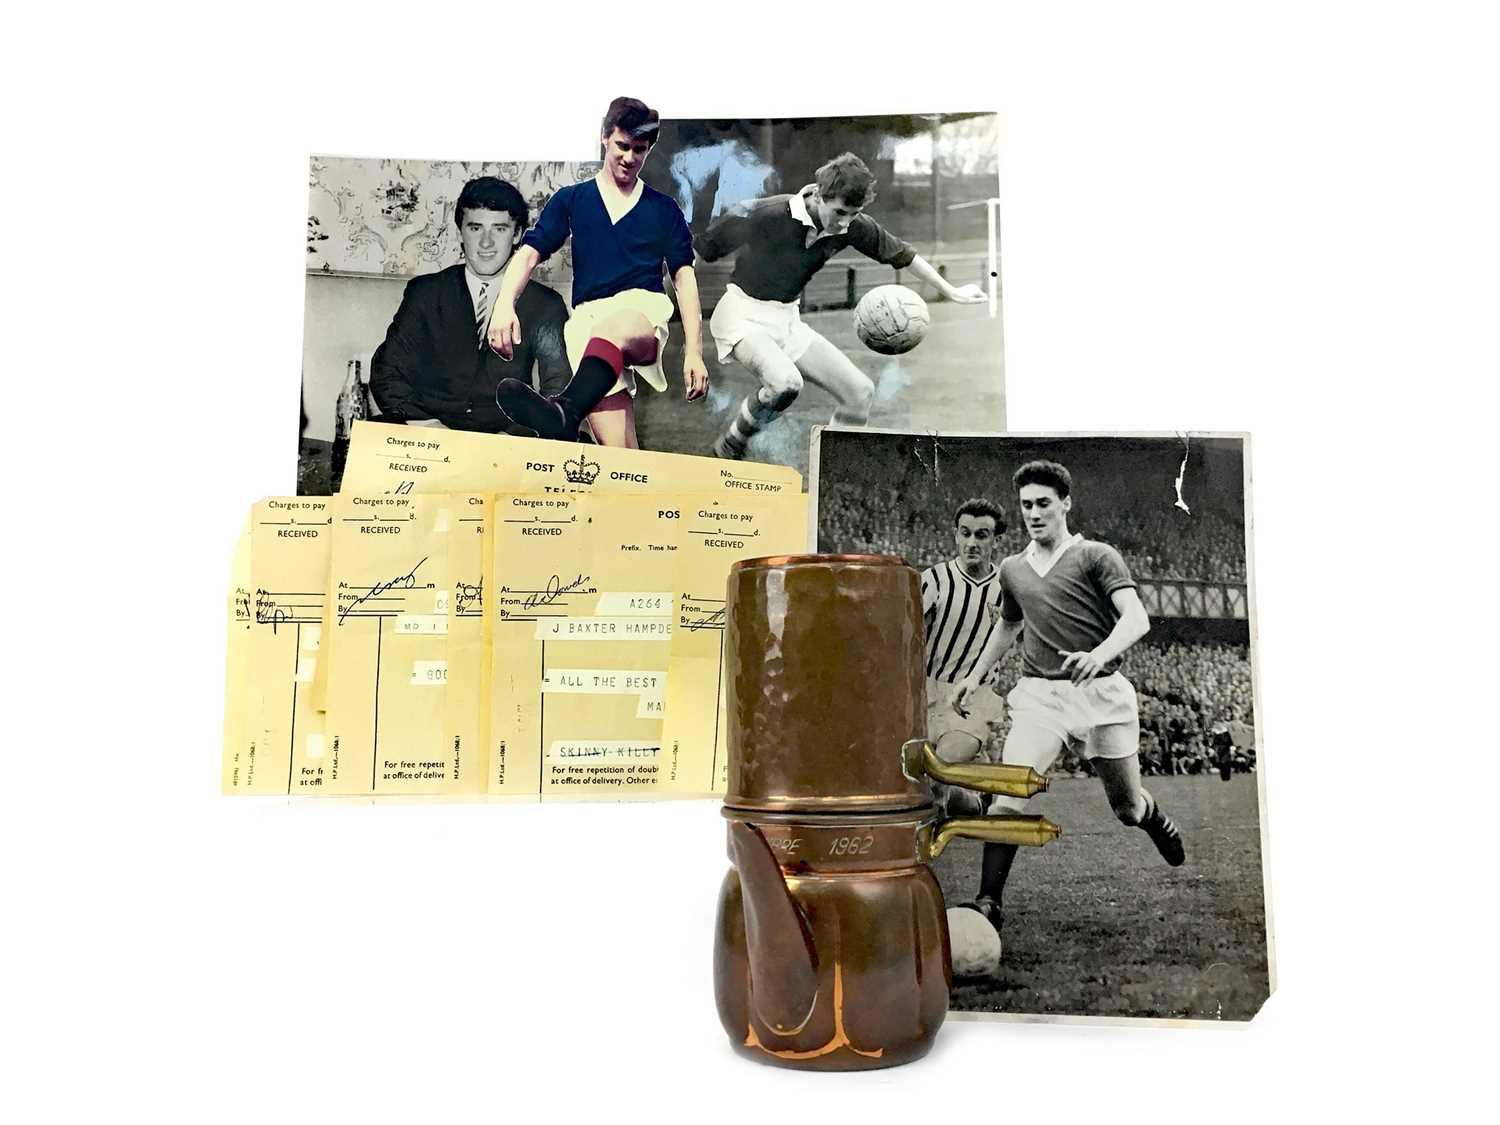 Lot 1712 - JIM BAXTER OF RANGERS F.C. - AN ARCHIVE RELATING TO HIS CAREER